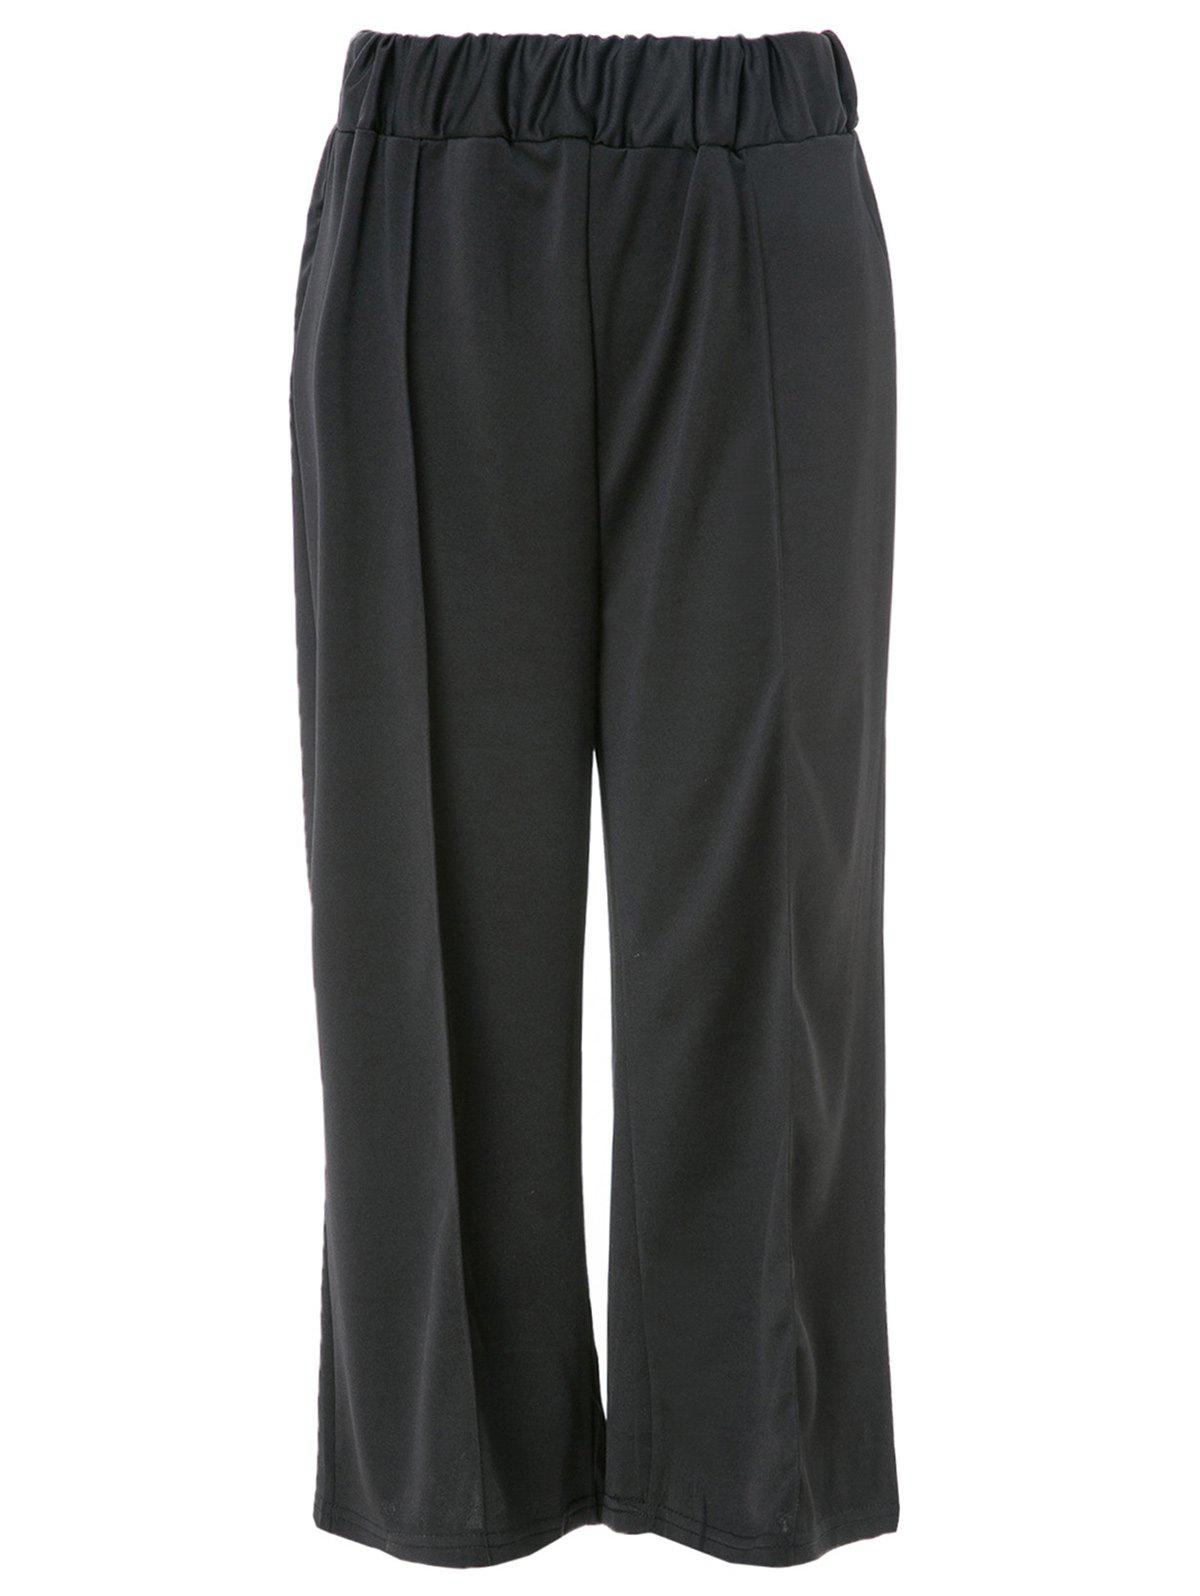 Stylish High Waist Black Wide Leg Pants For Women - BLACK XL